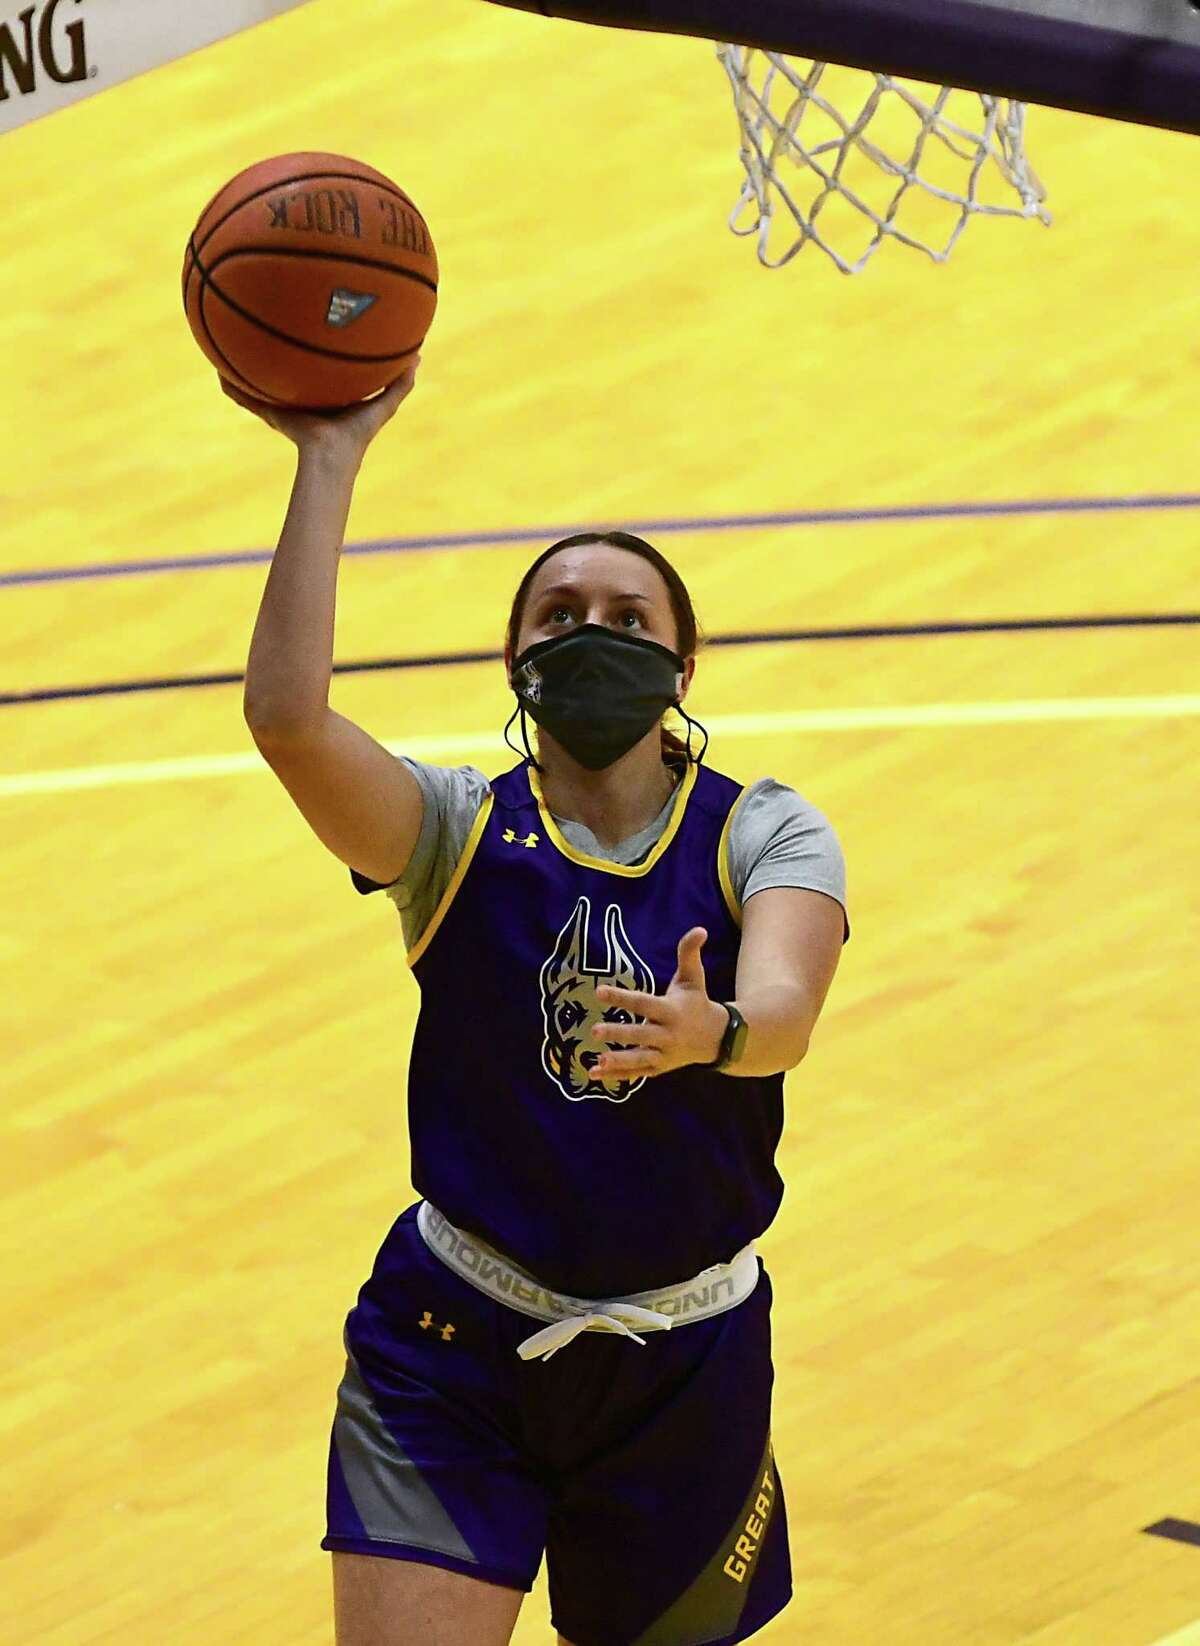 Morgan Haney makes a layup as the University at Albany women's basketball team practices on Wednesday, Oct. 21, 2020 in Albany, N.Y. (Lori Van Buren/Times Union)